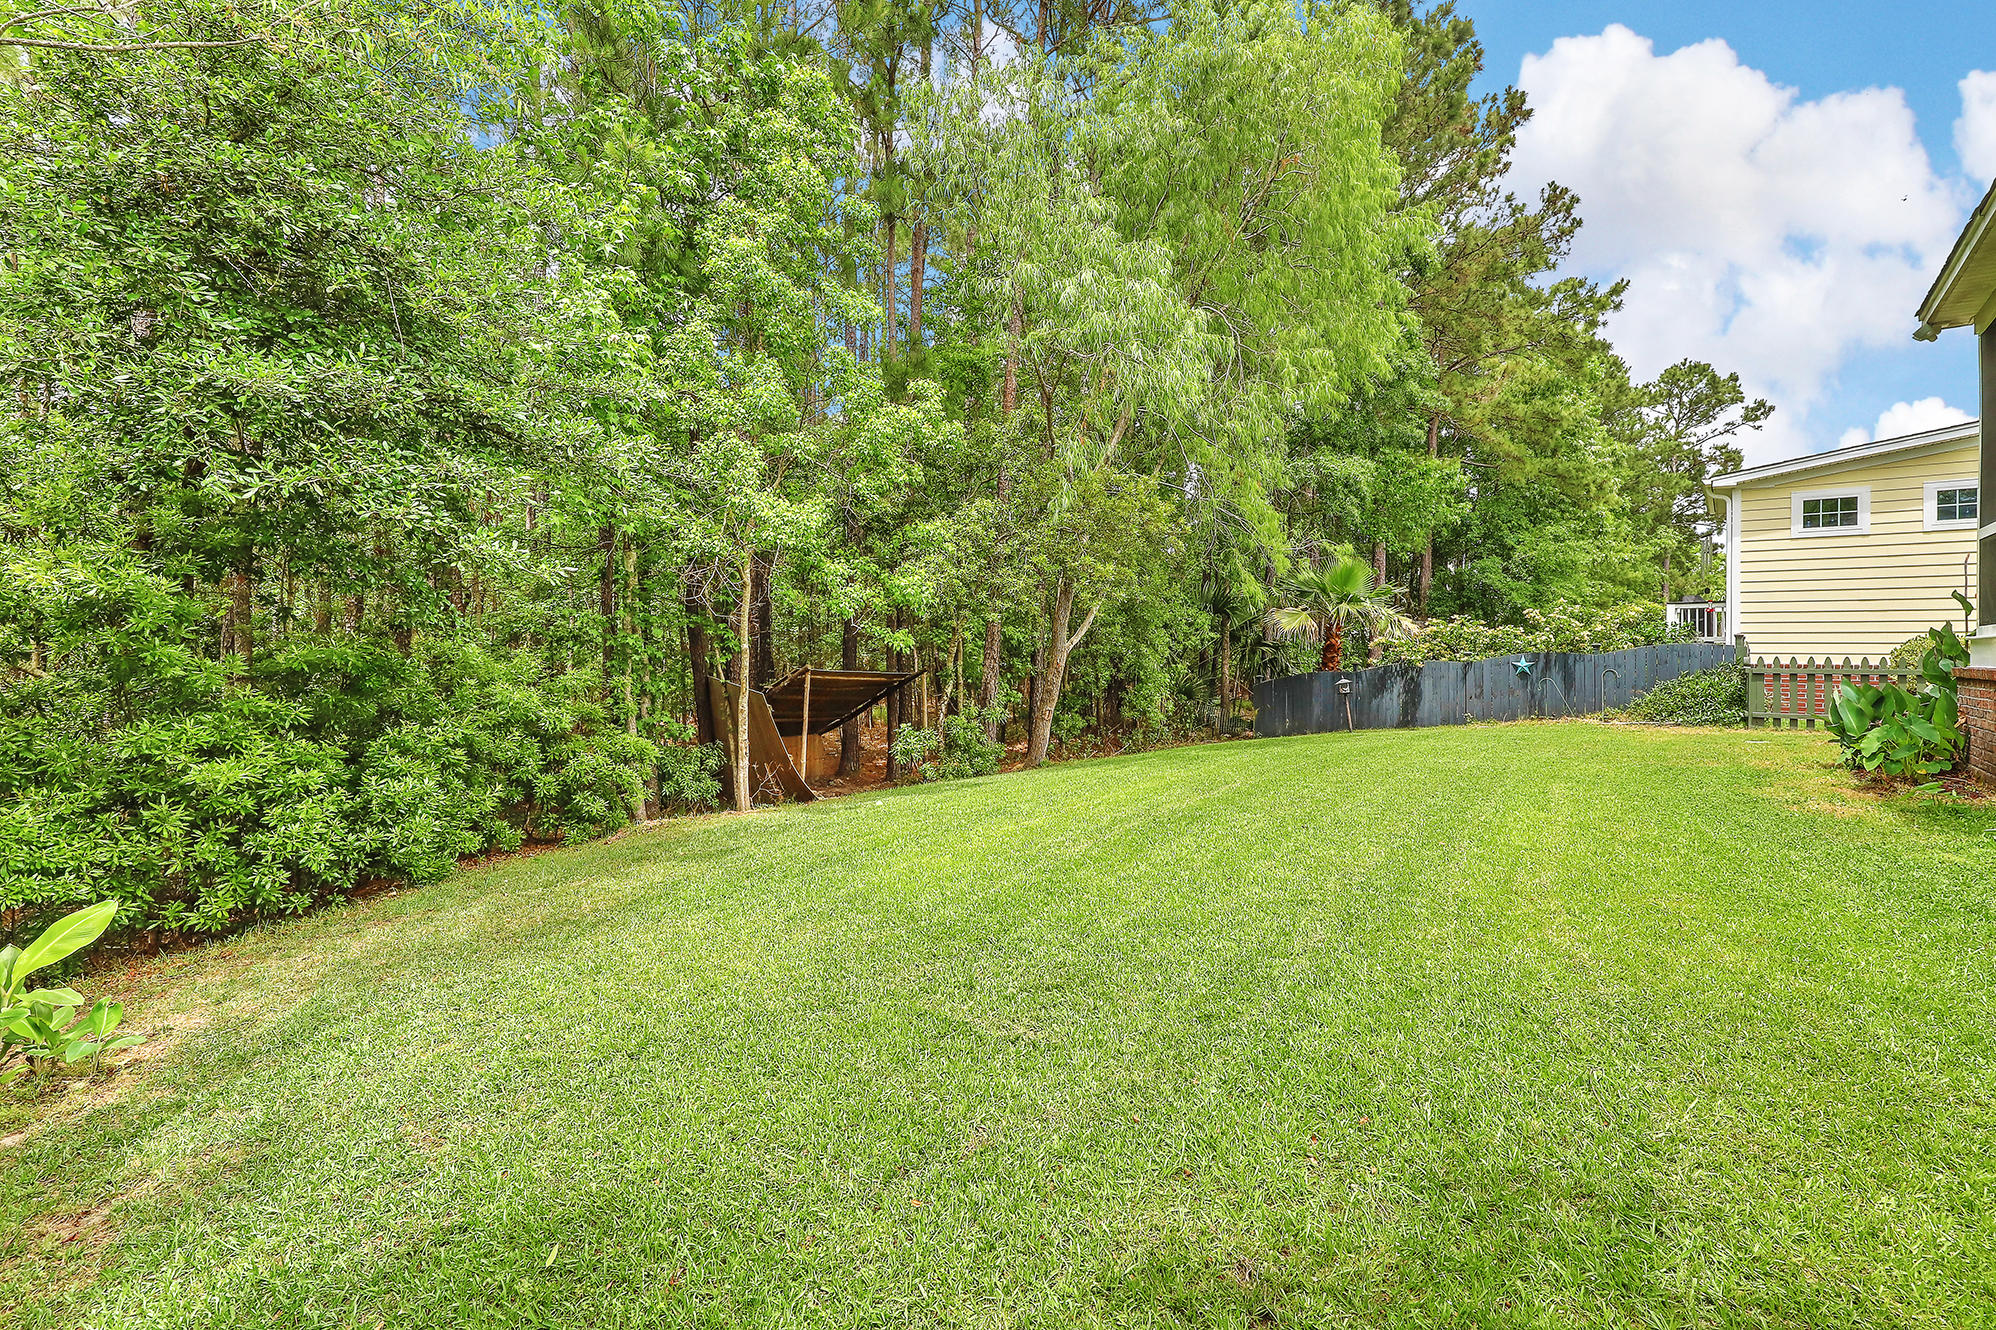 Rivertowne On The Wando Homes For Sale - 2182 Sandy Point Lane, Mount Pleasant, SC - 1